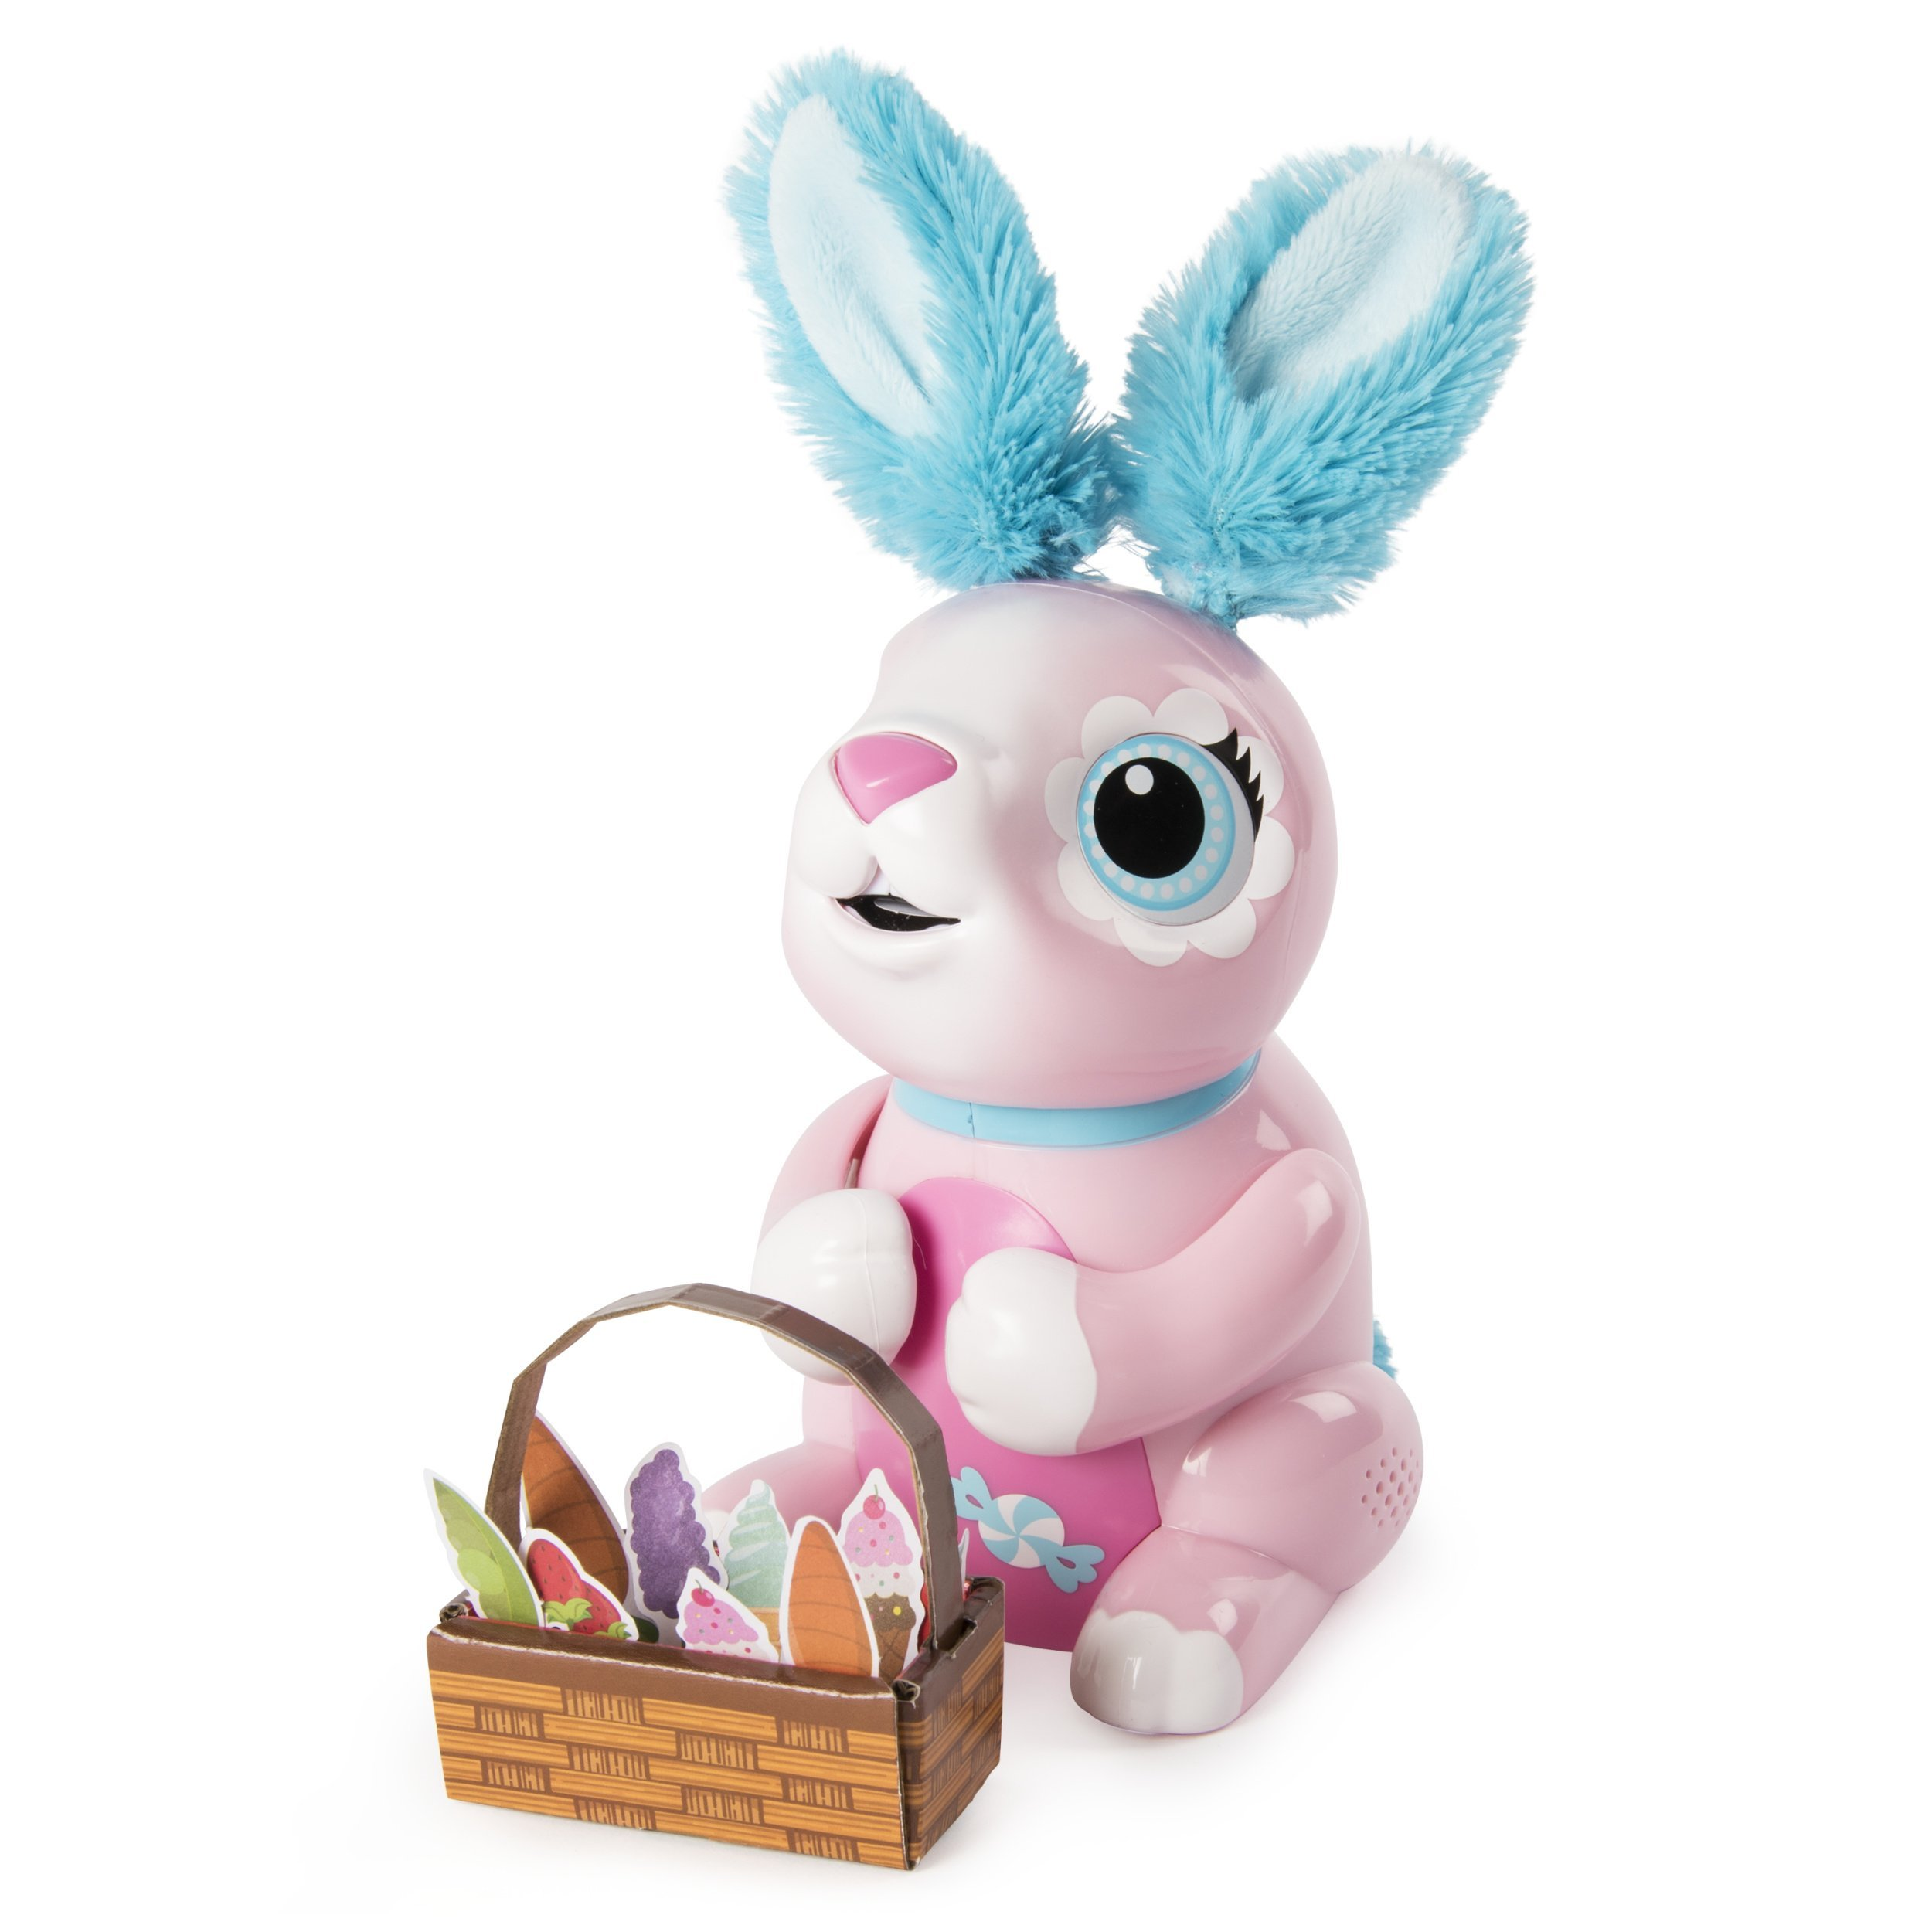 Zoomer Hungry Bunnies Shreddy, Interactive Robotic Rabbit That Eats, Ages 5 & Up by Zoomer (Image #1)